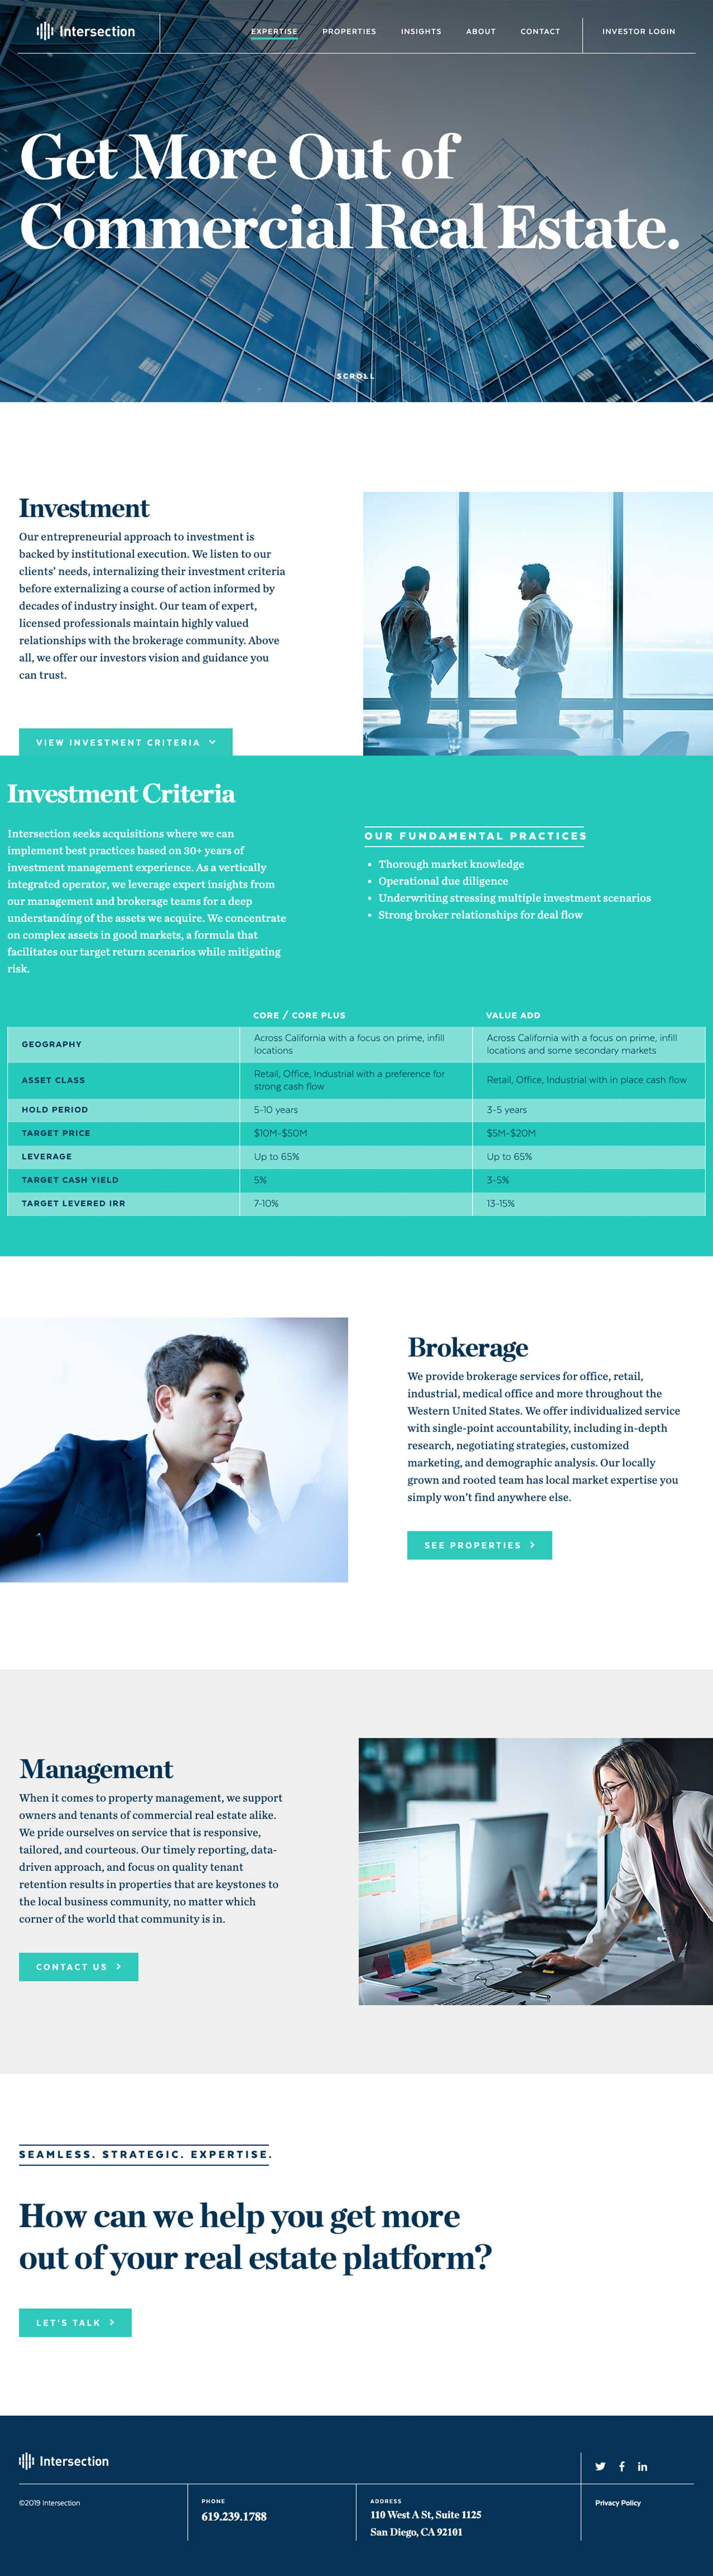 ignyte-branding-agency-intersection-web-design-expertise-page-V6